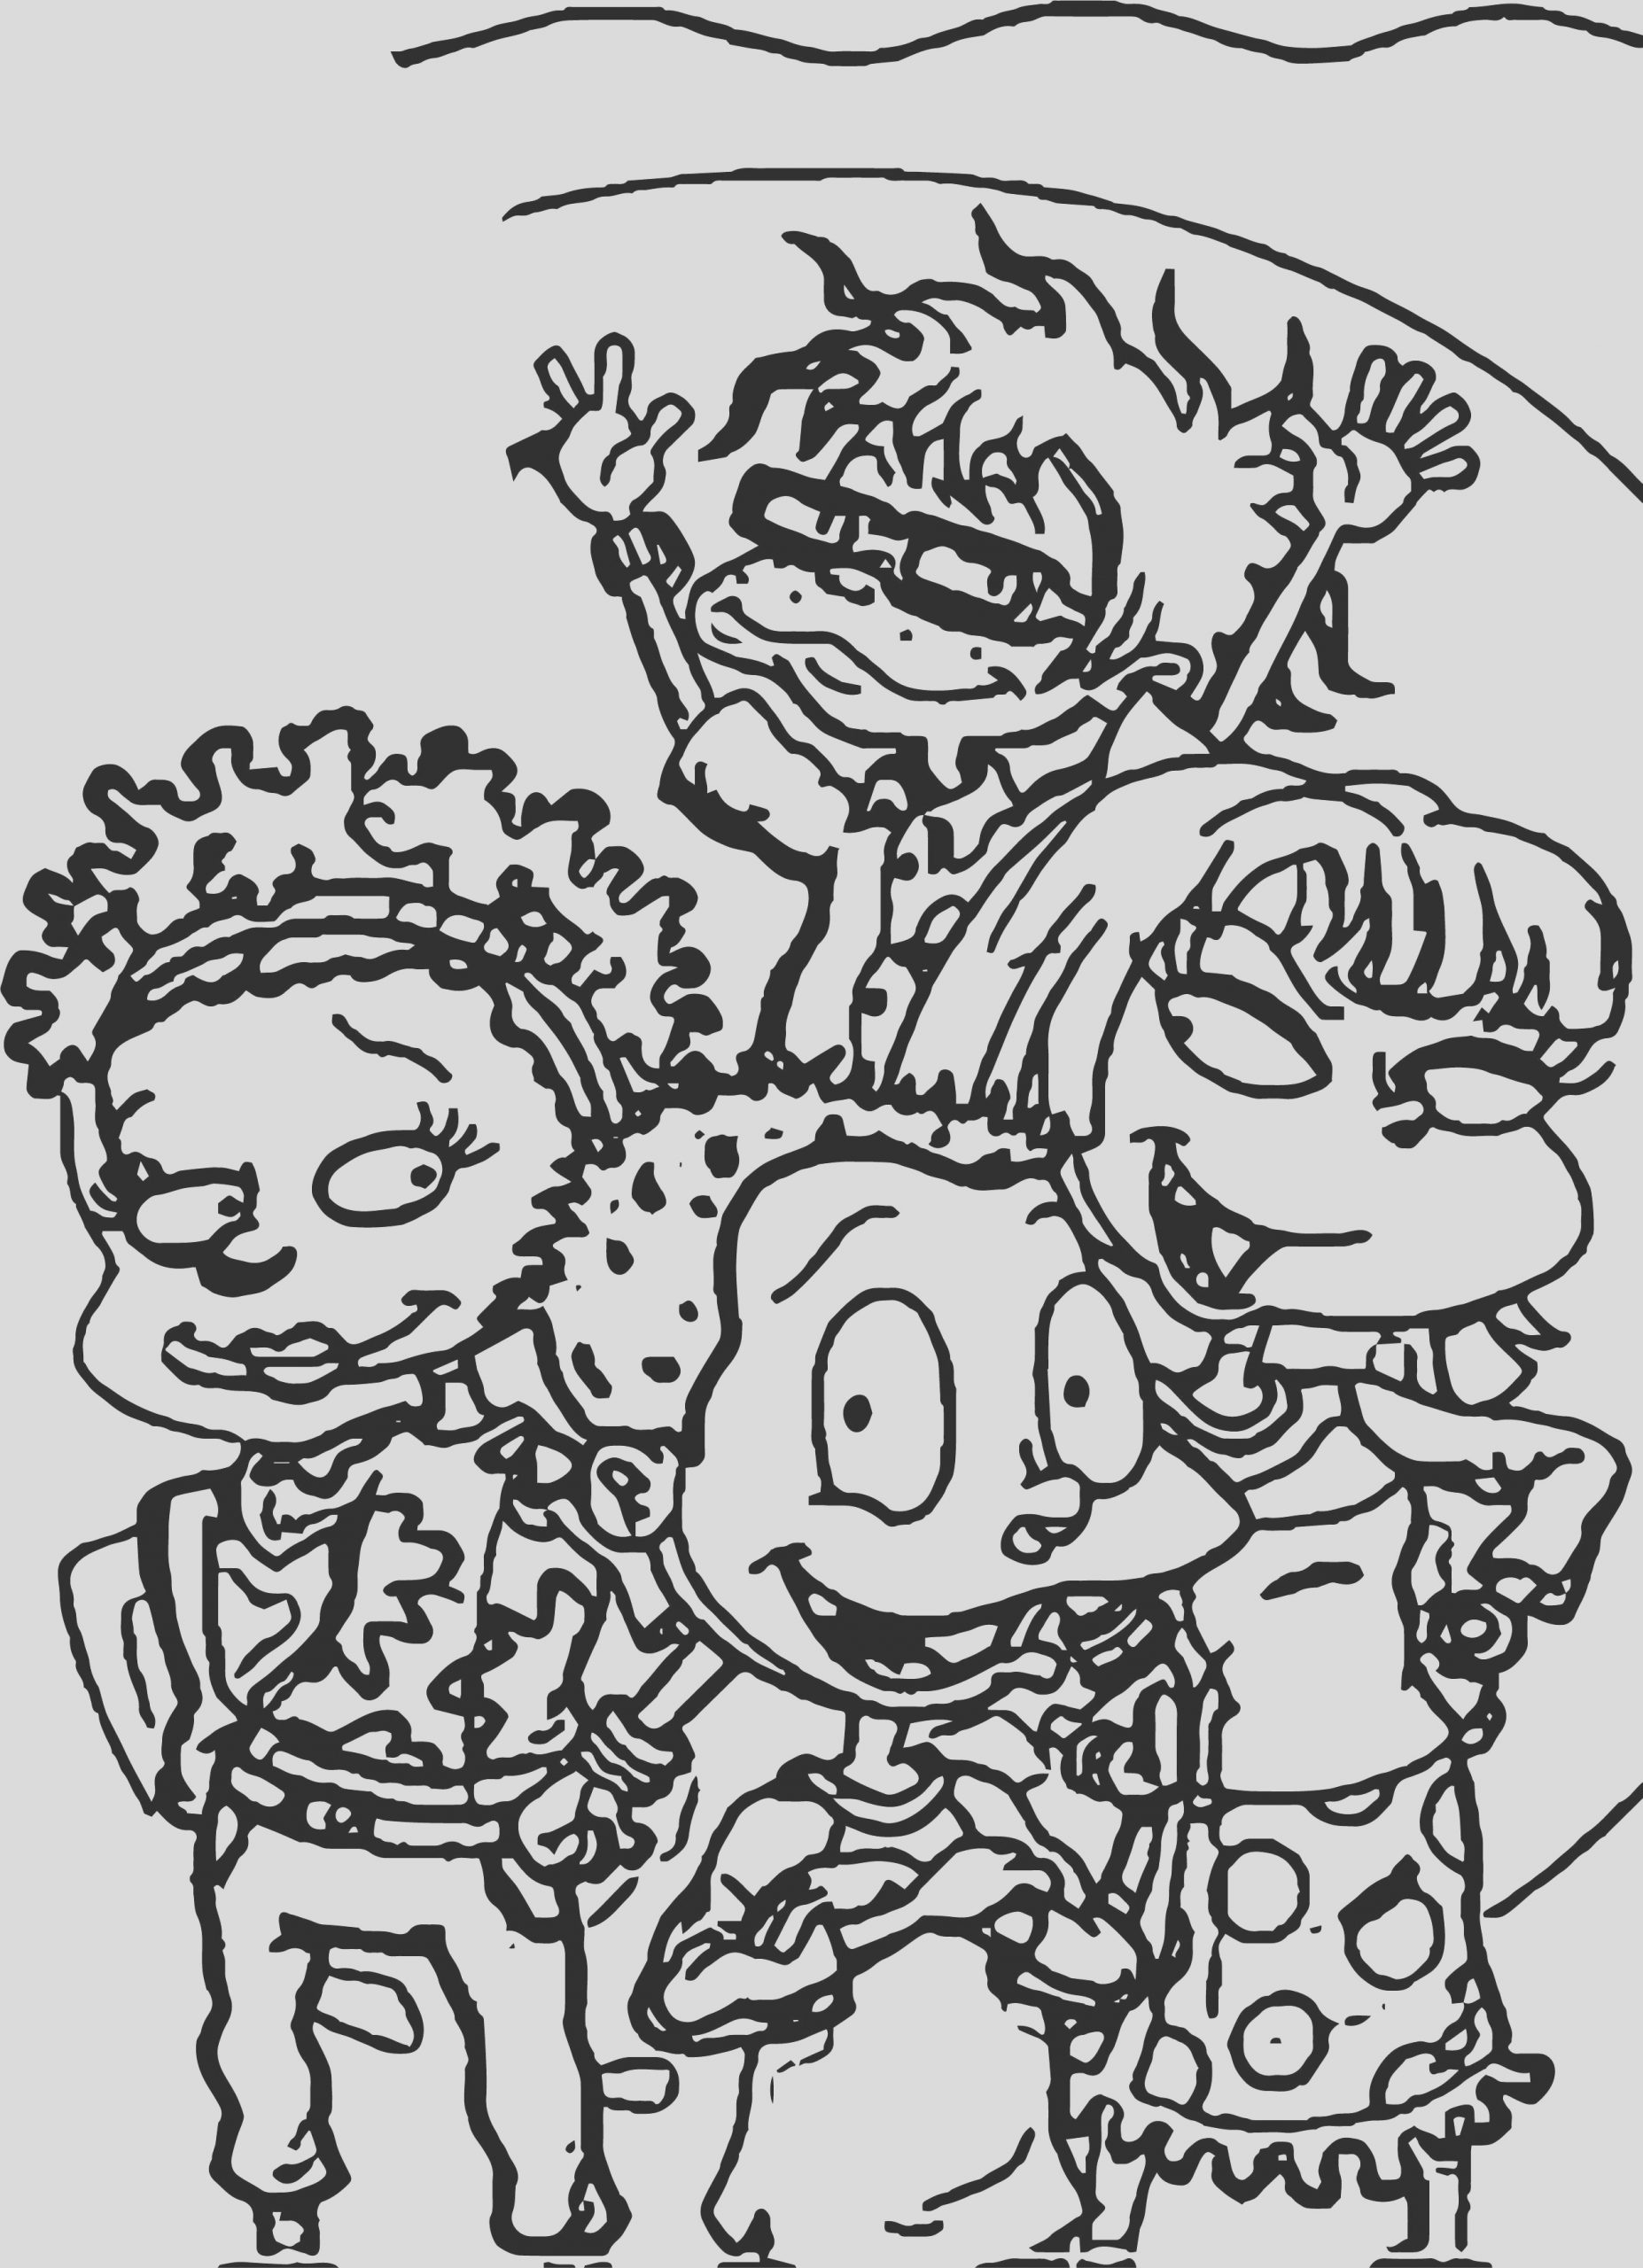 rugrats grown coloring page